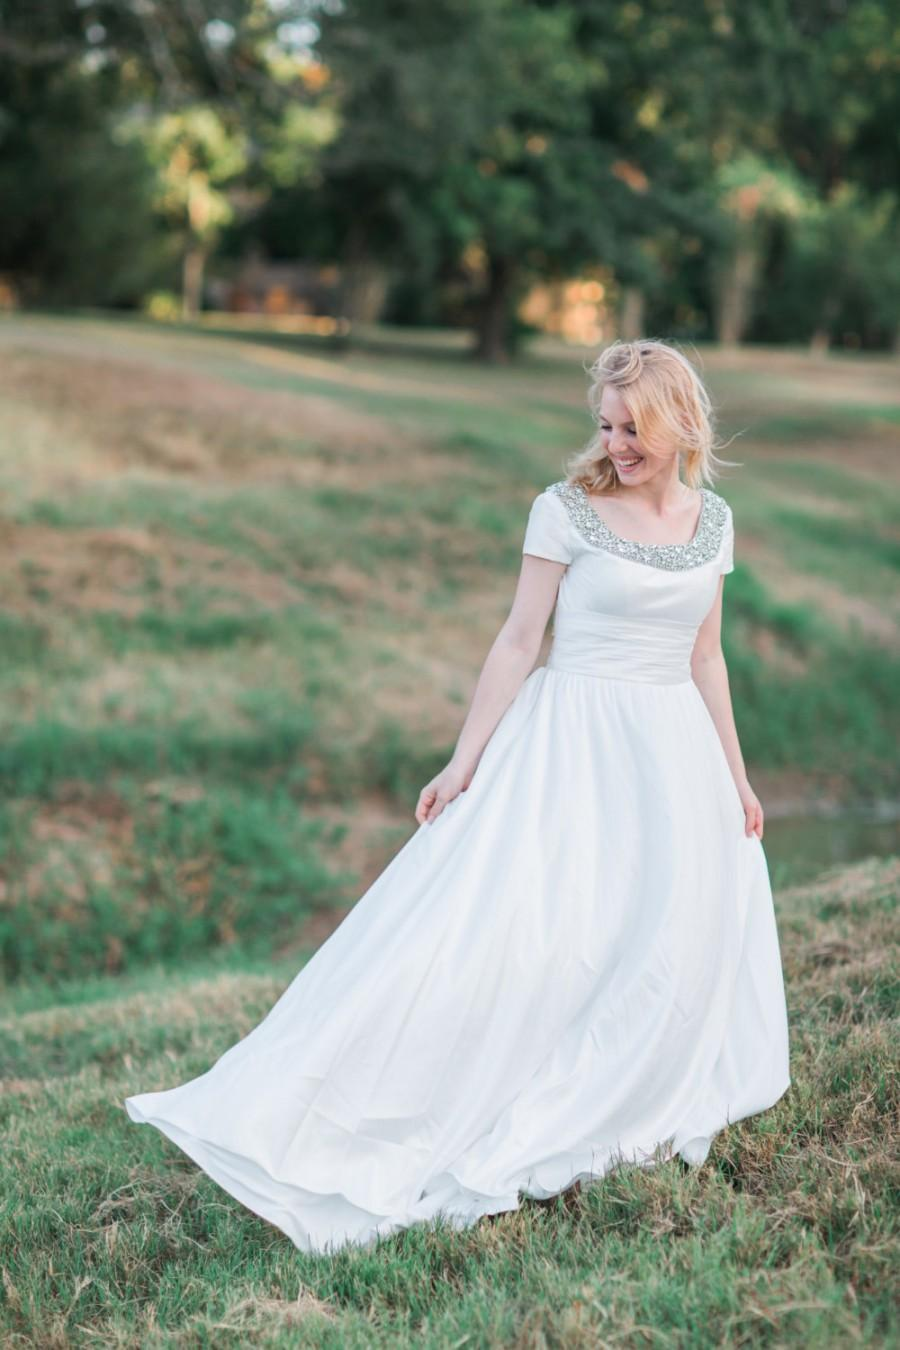 Mariage - Wedding Dress with Short Sleeves and Hidden Pockets - The Valentina Dress